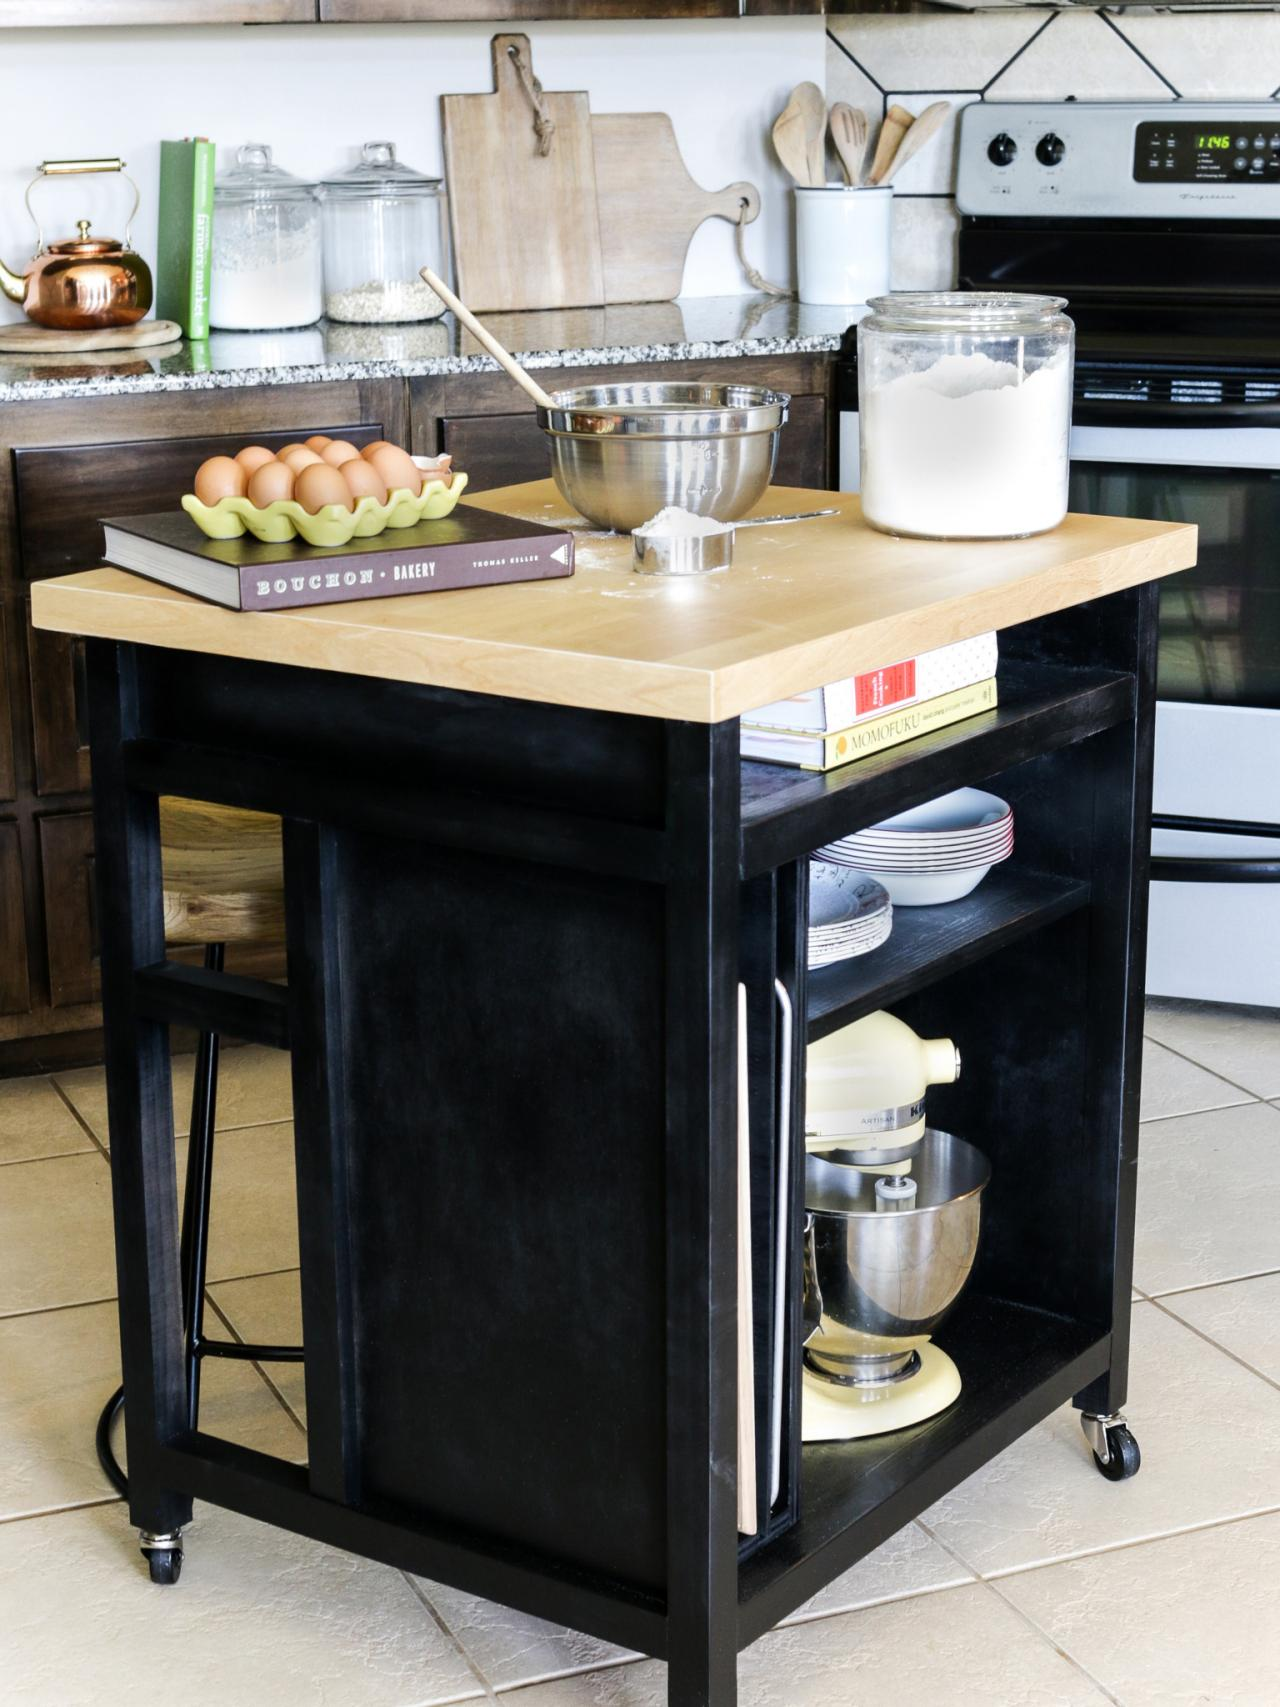 diy kitchen island ideas how to build a diy kitchen island on wheels hgtv 17376